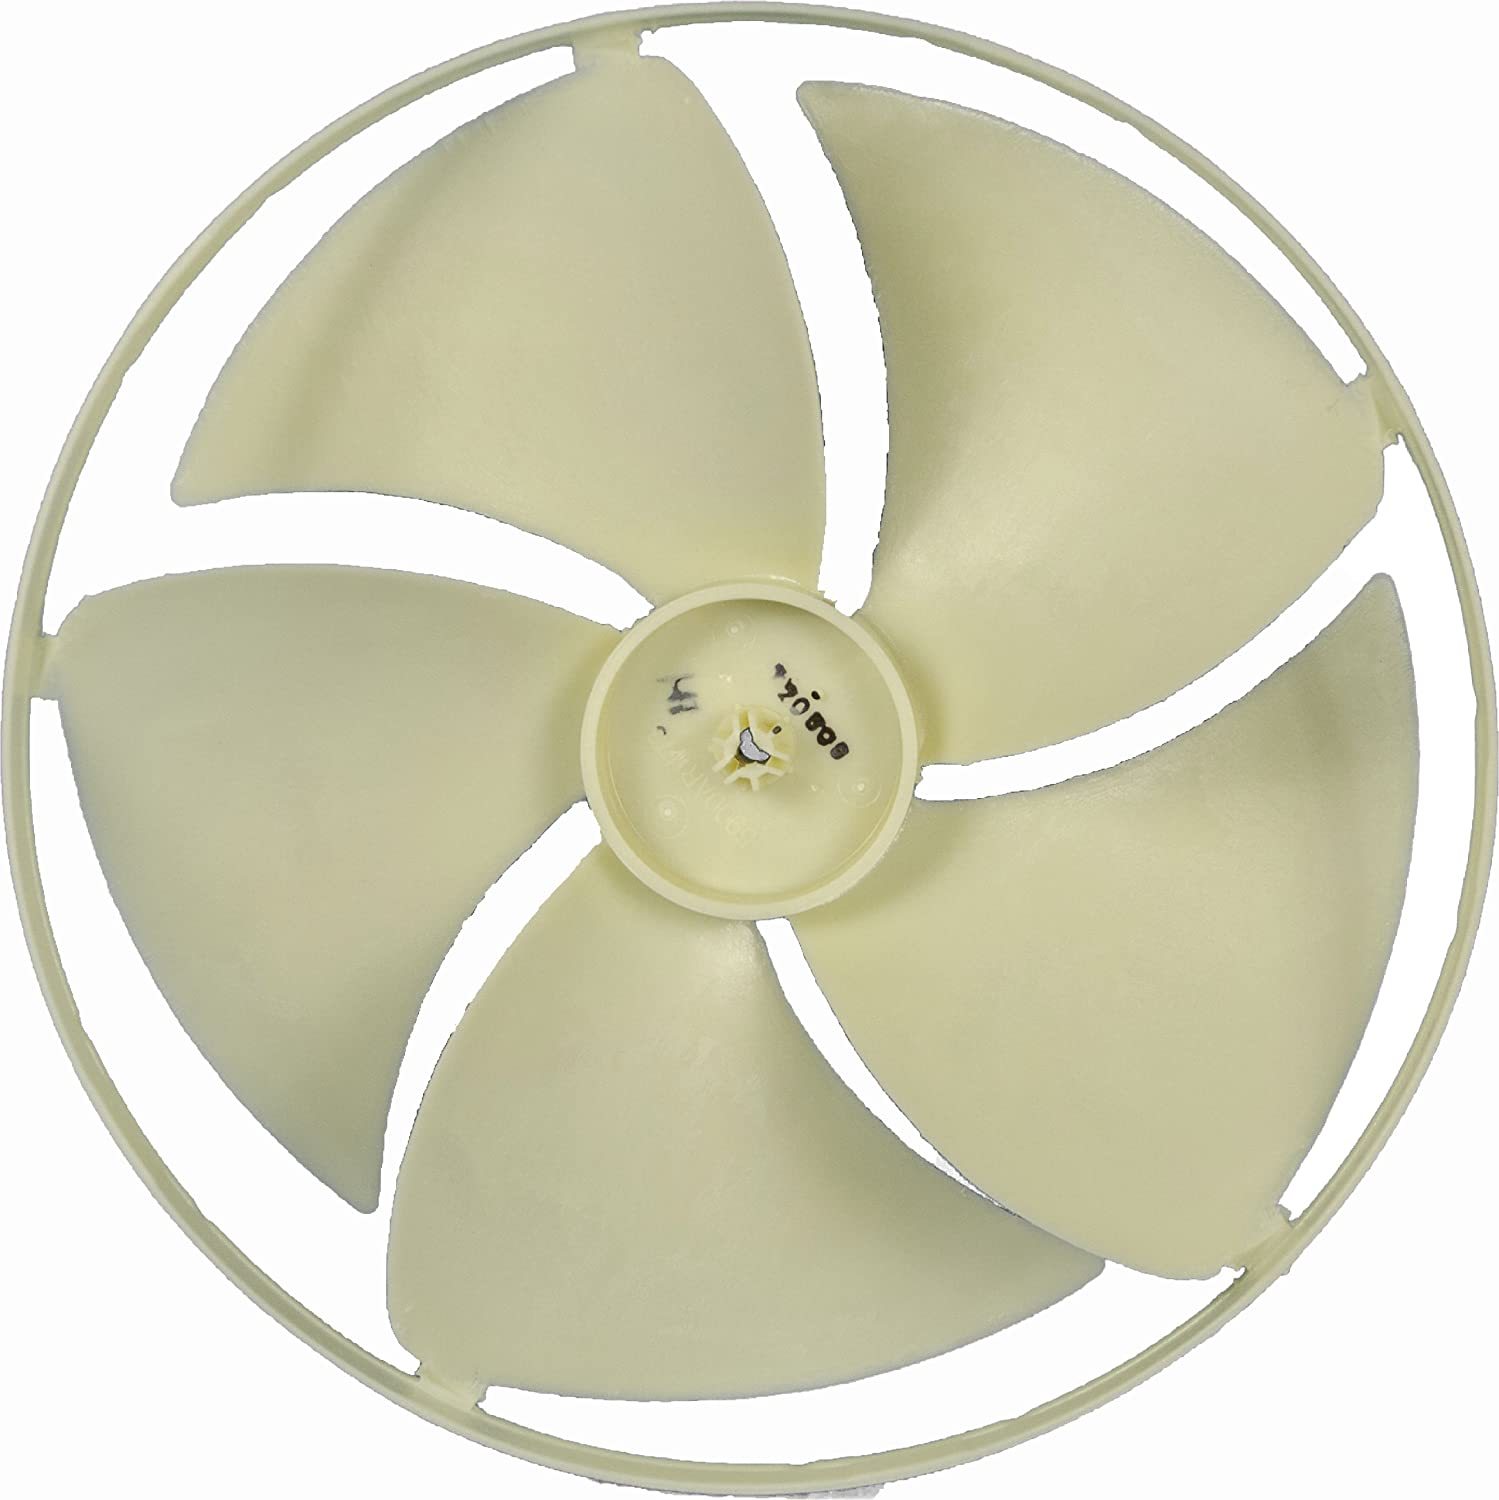 LG Electronics Challenge the lowest price of Japan ☆ 5900AR1173A discount Air Conditioner Fan Bla Axial Cooling